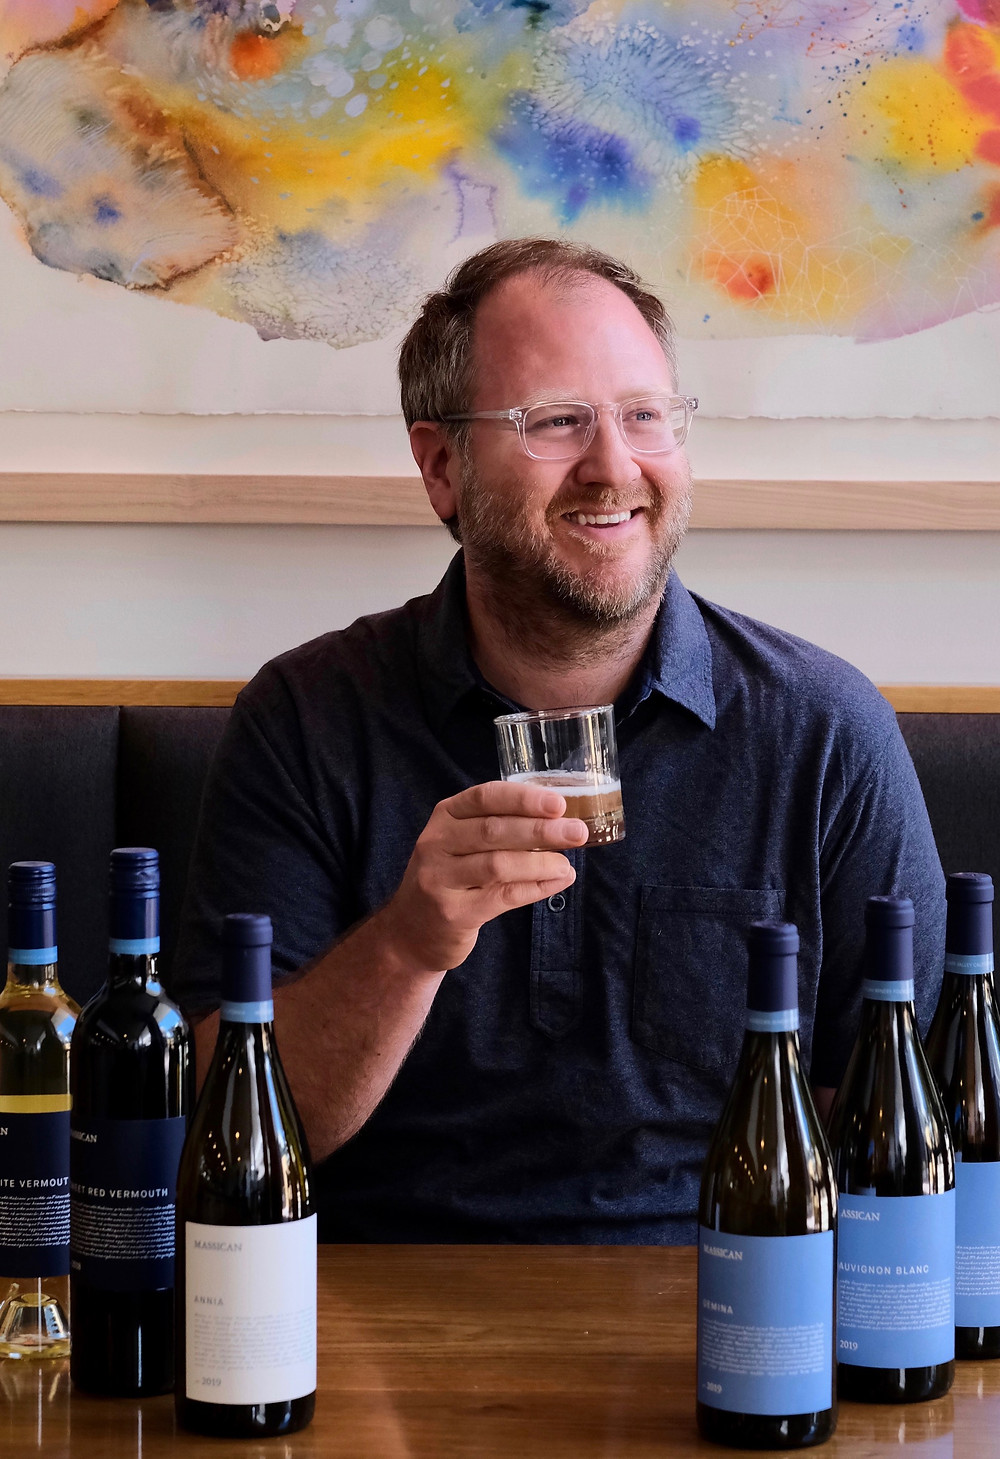 Interview and virtual wine tasting with Dan Petroski winemaker and owner of Northern's California based winery Massican where he is inspired by the white wines of Friuli Italy